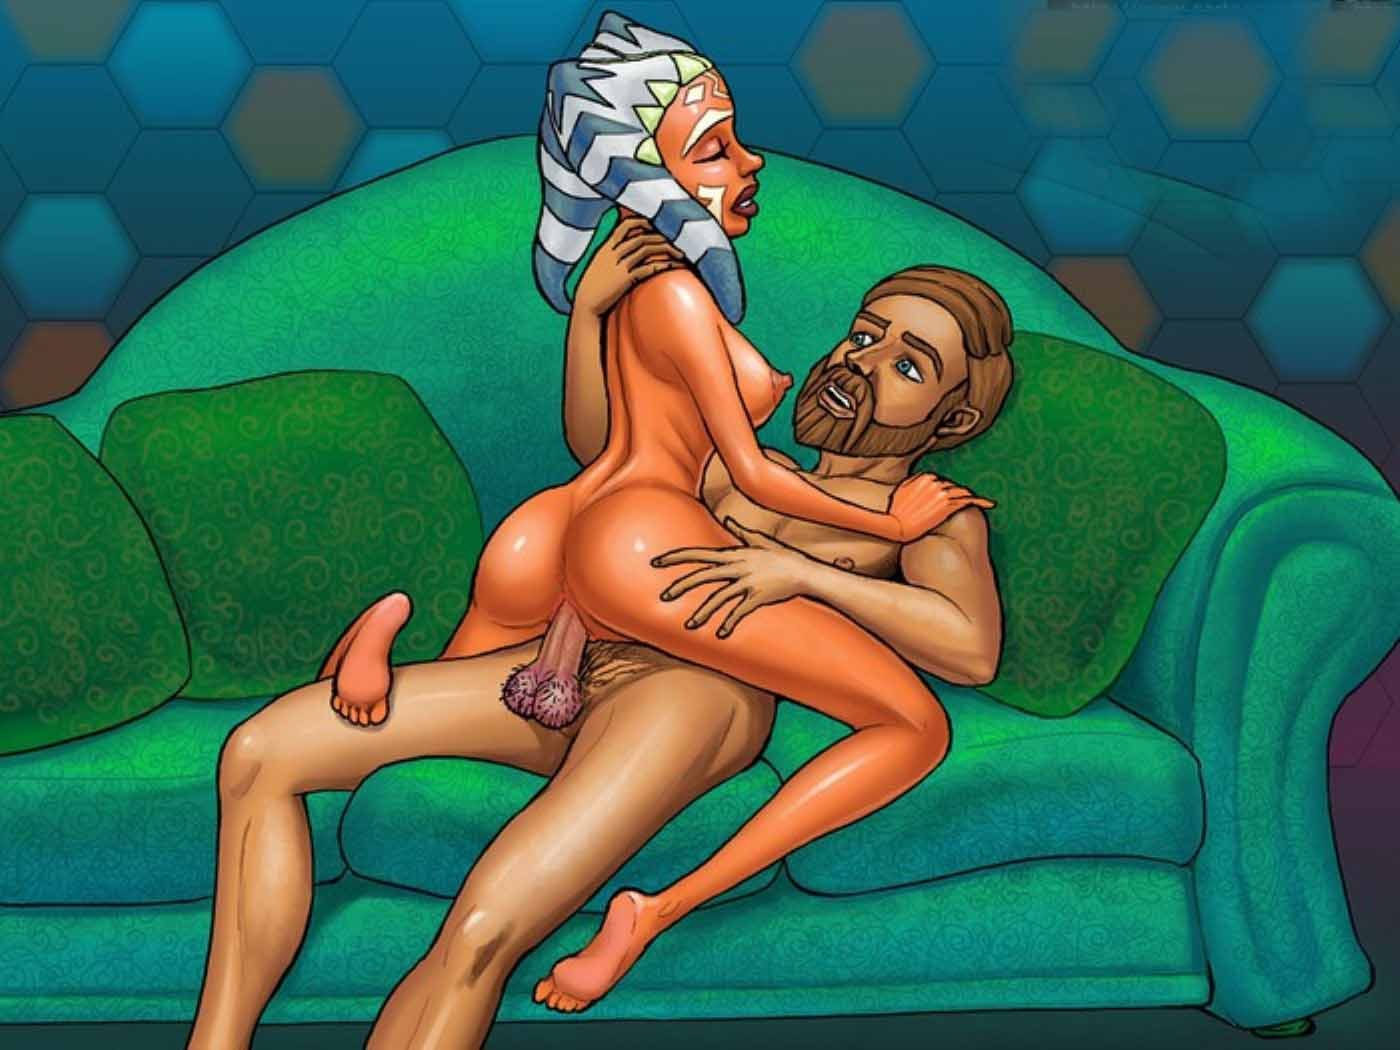 Starwars cartoon sex sex comics